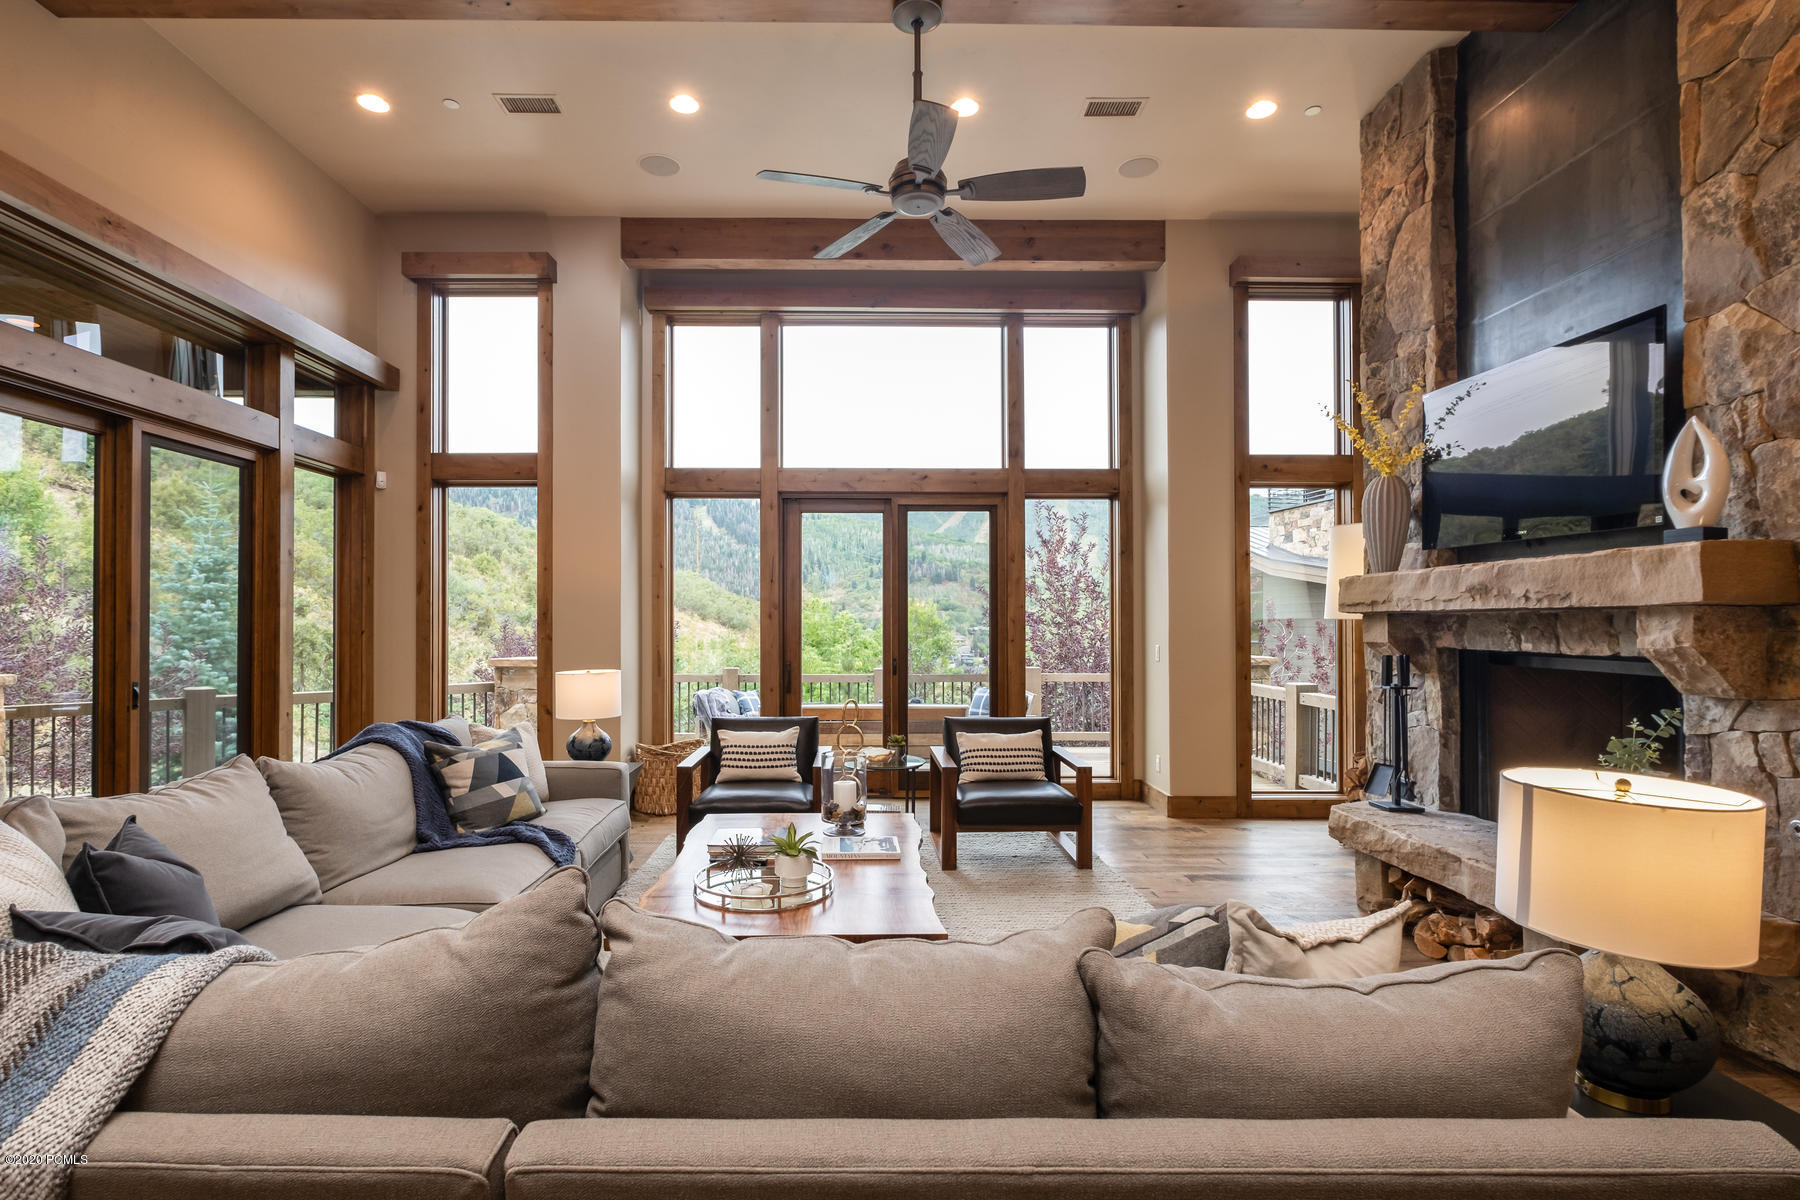 986 Aerie Drive, Park City, Utah 84060, 5 Bedrooms Bedrooms, ,5 BathroomsBathrooms,Single Family,For Sale,Aerie,12003325